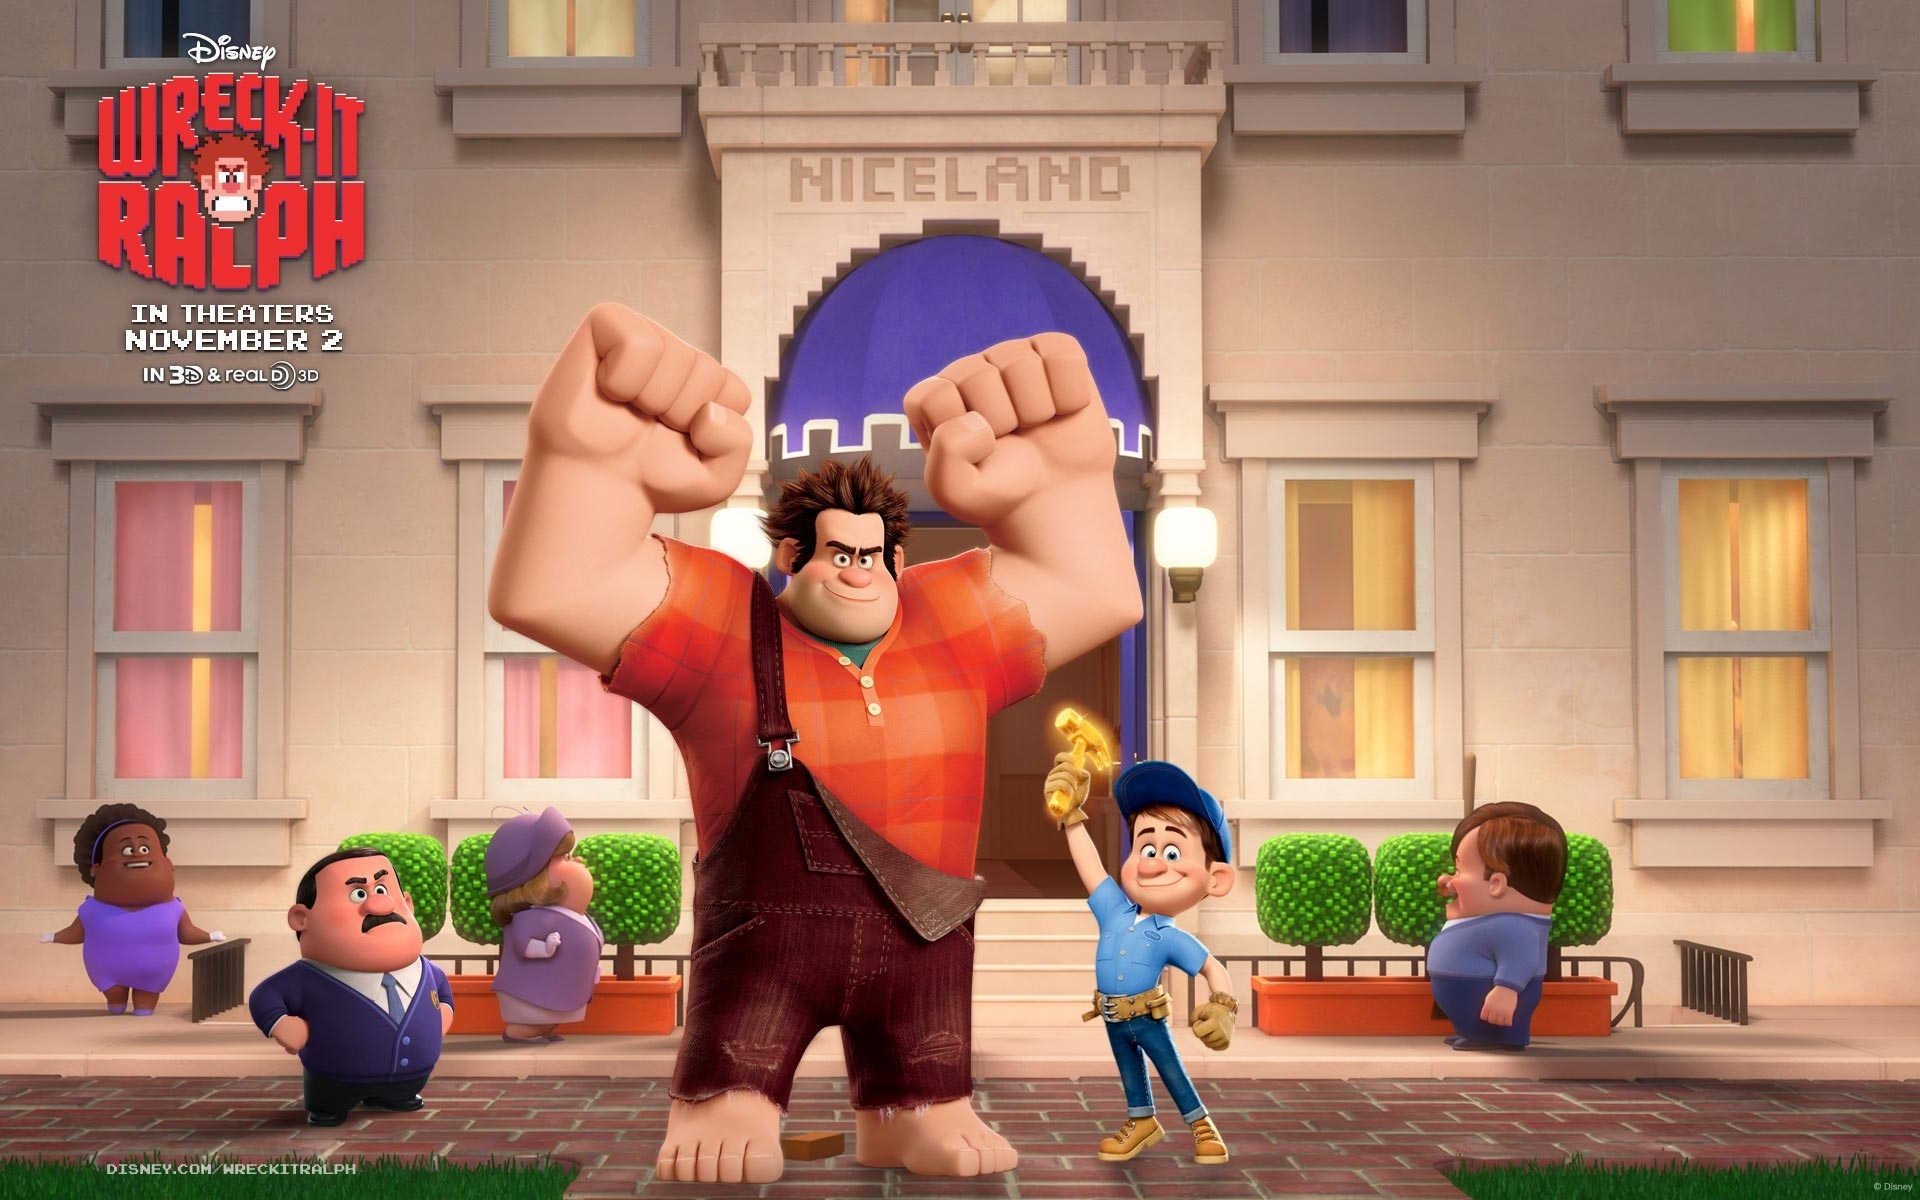 10 New Wreck It Ralph Wallpaper FULL HD 1920×1080 For PC Background